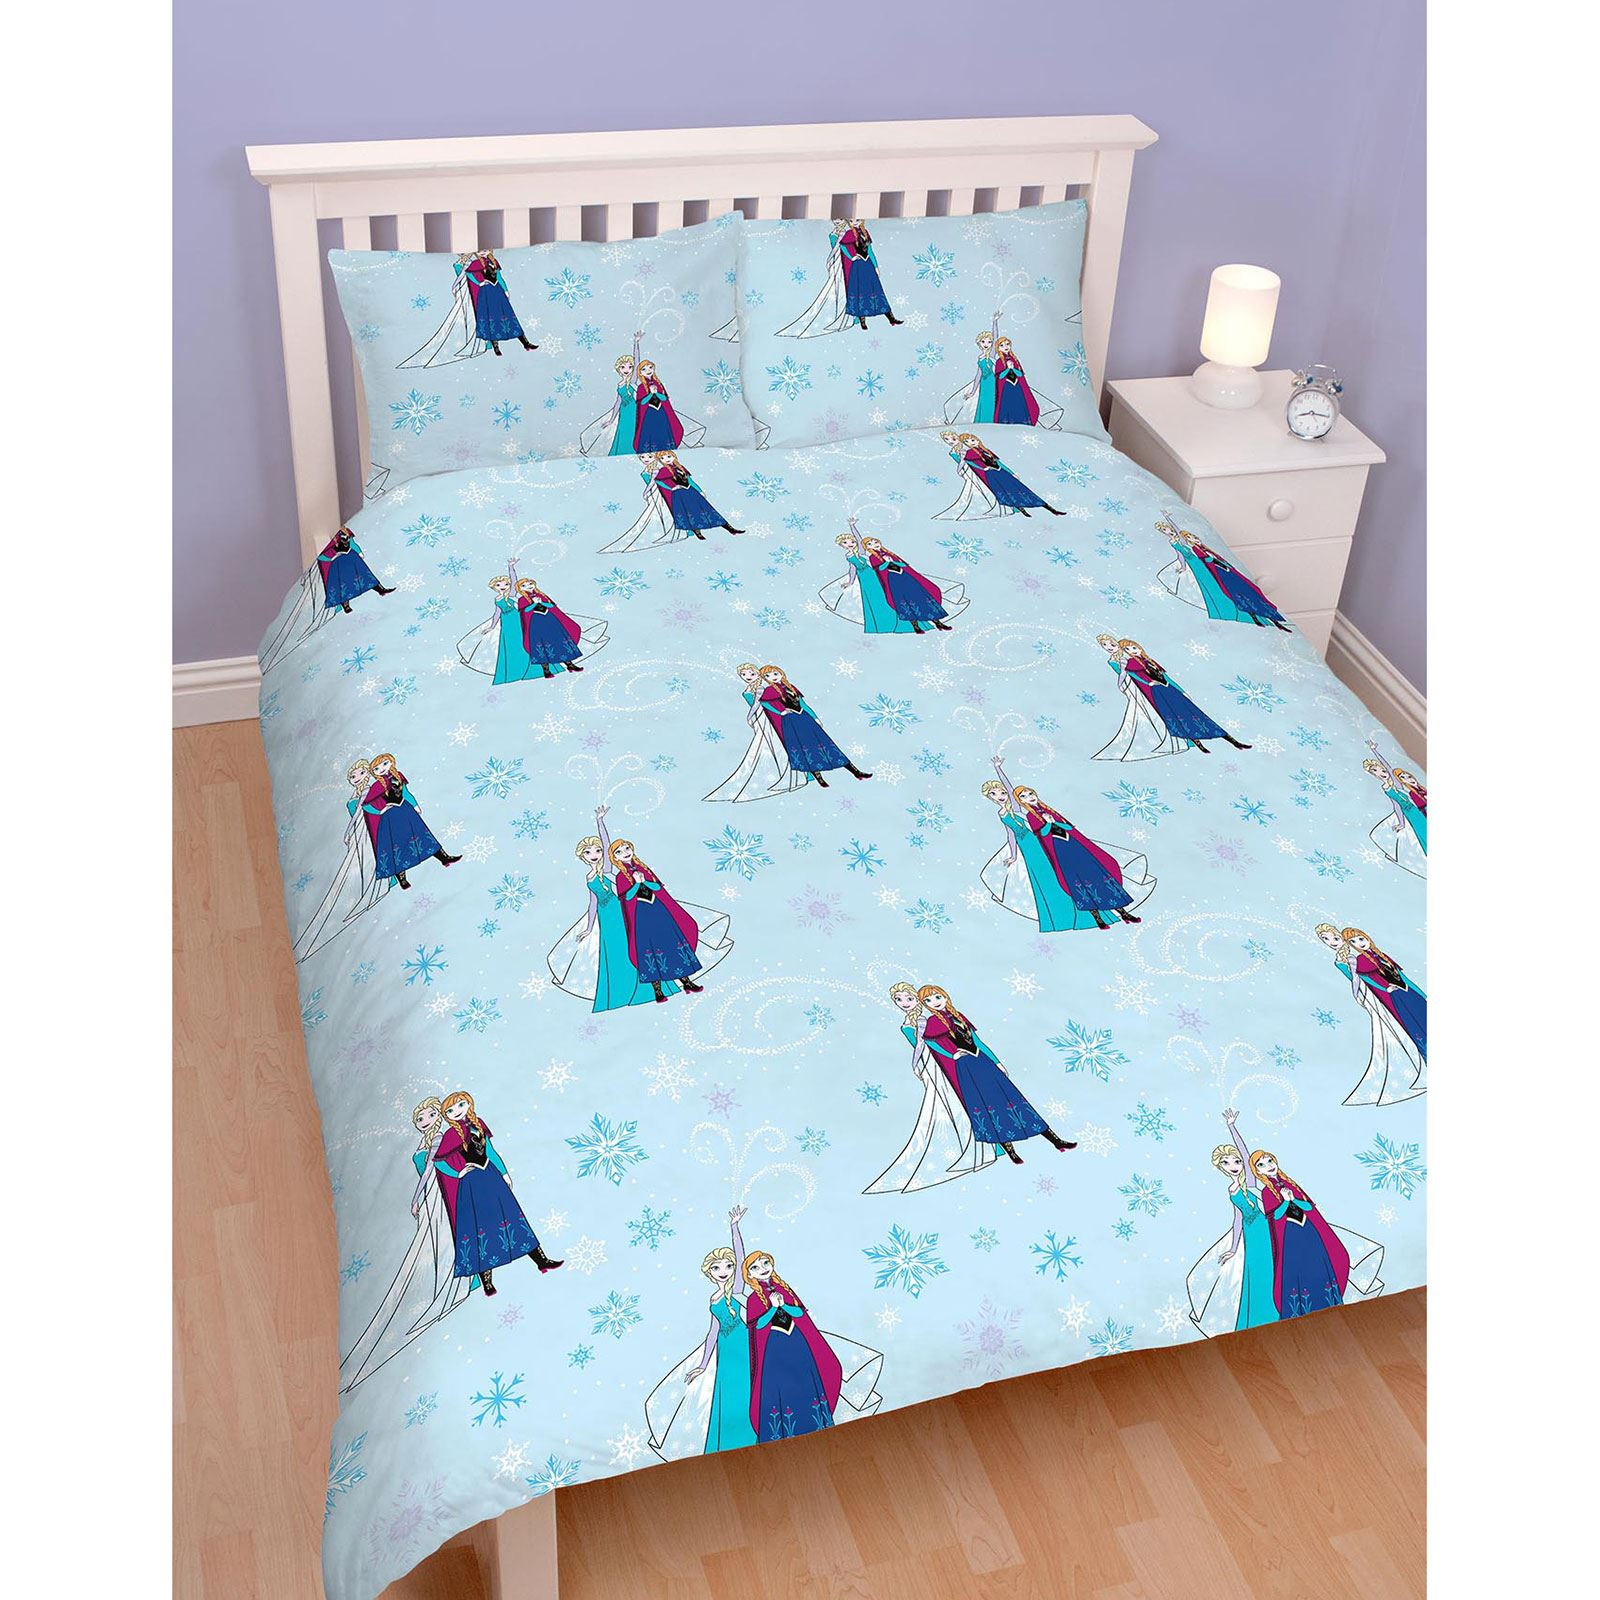 Sleigh Bedroom Sets King Bedroom Jpg Simple Bedroom Colour Design Bedroom Accessories Uk: OFFICIAL DISNEY FROZEN LIGHTS DOUBLE DUVET COVER SET